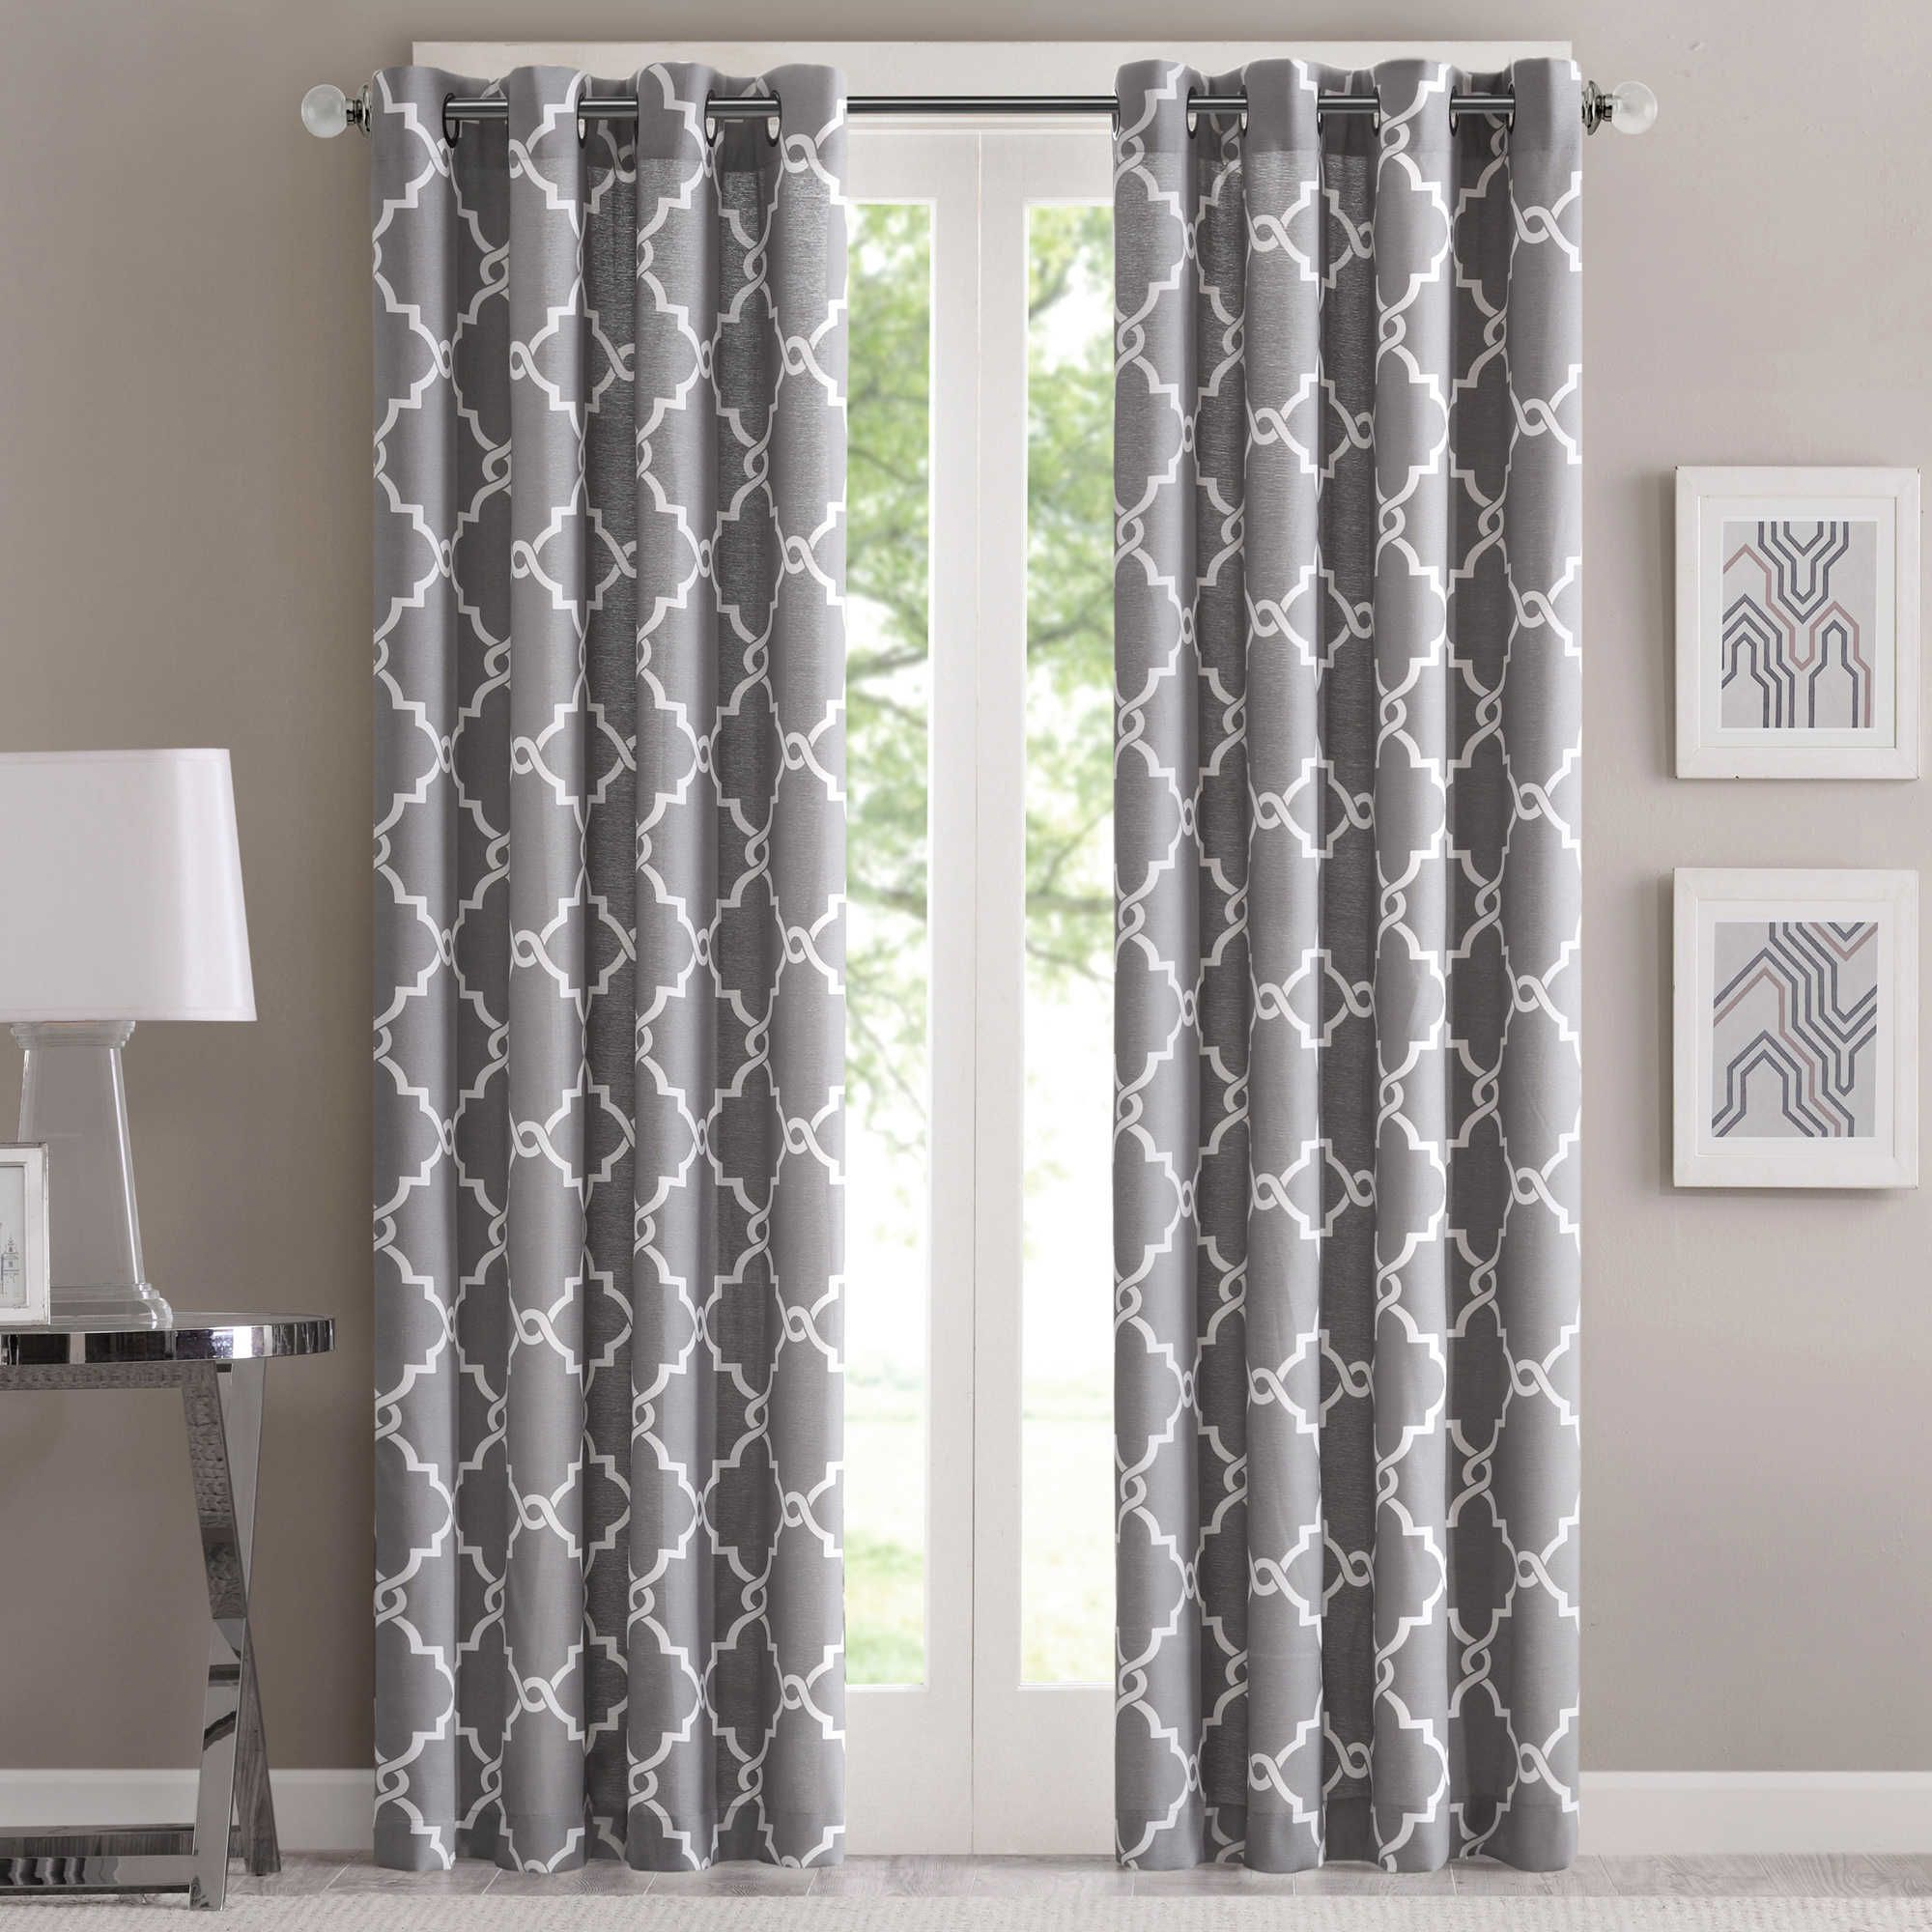 Most Recent Fretwork 95 Inch Window Curtain Panel In Grey (View 13 of 20)